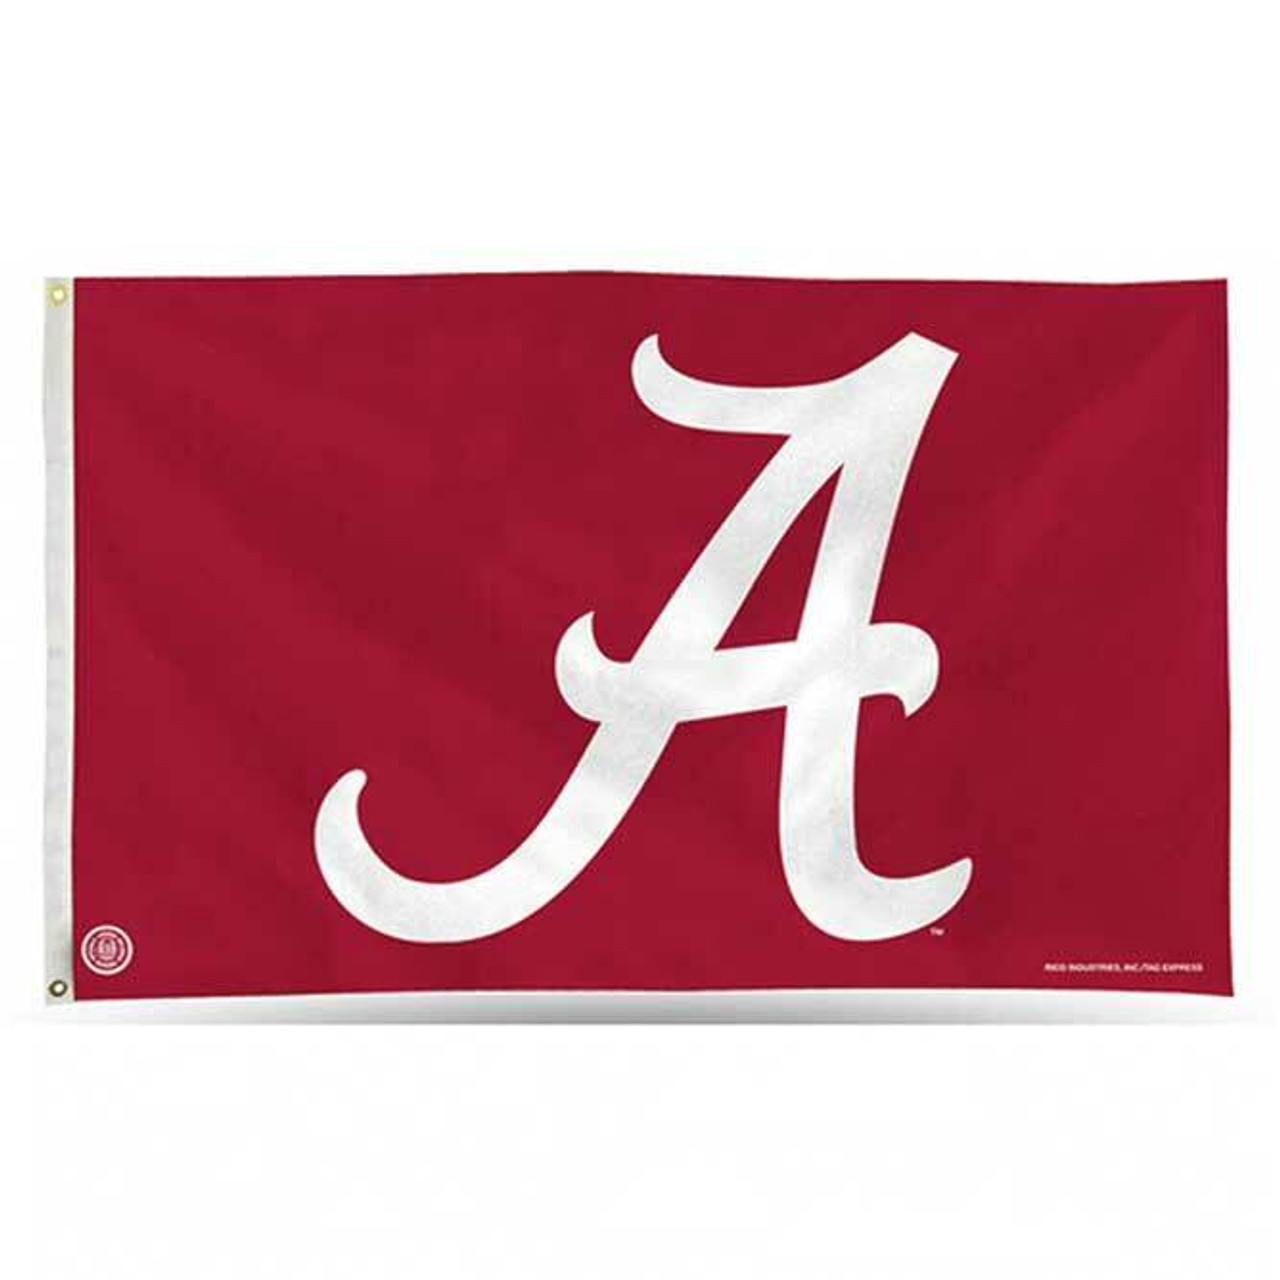 The University of Alabama flag is a crimson rectangle with a large white 'A' in a customized serif font. The flag comes with a white header and brass grommets.